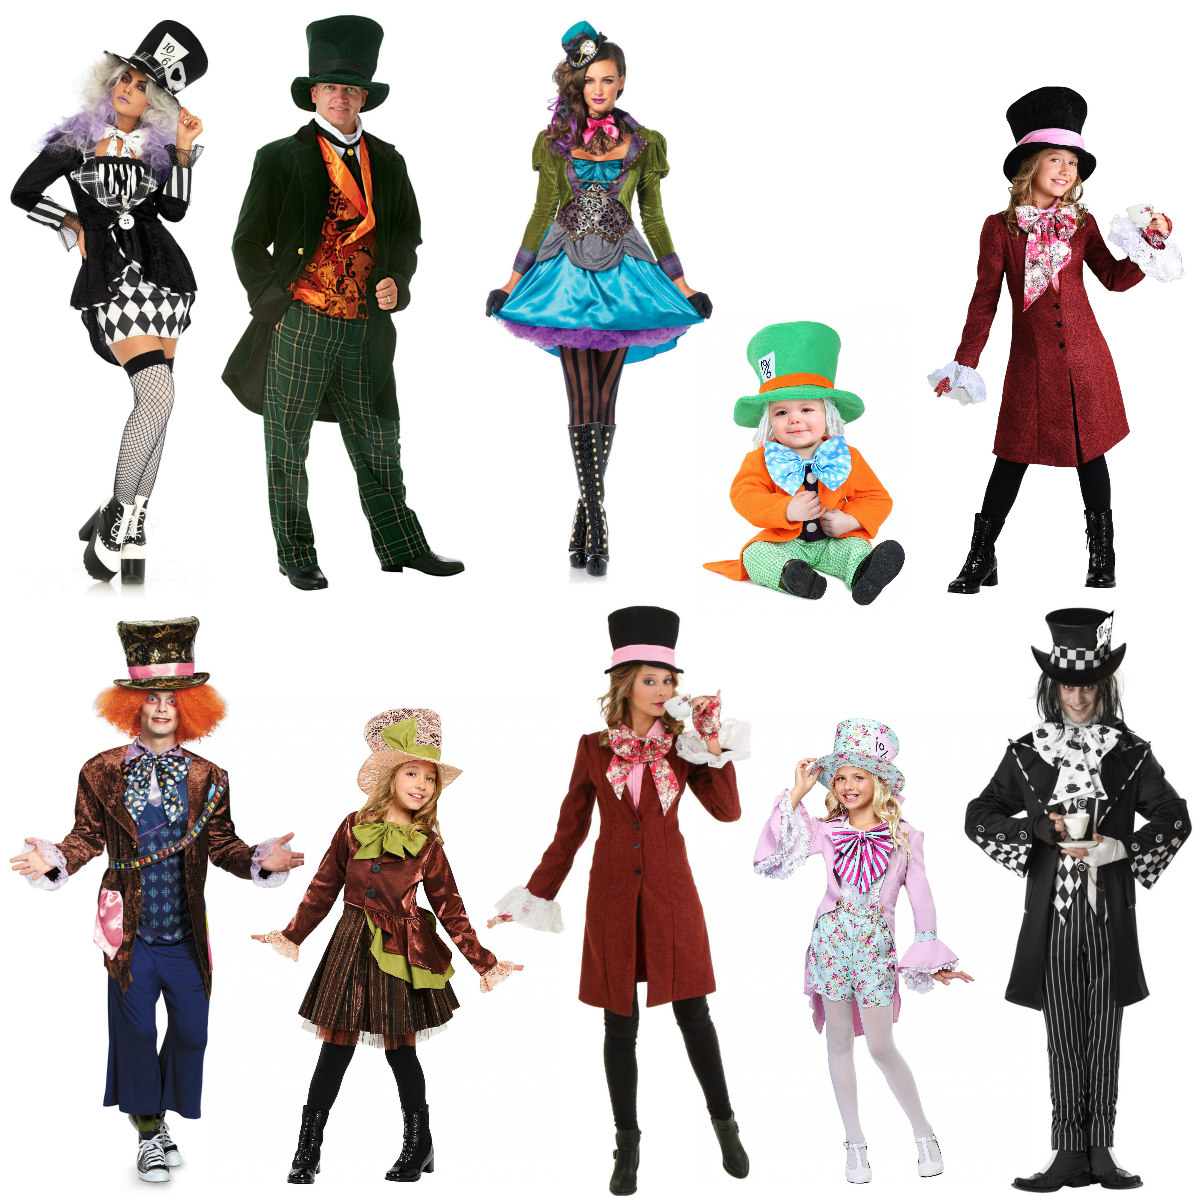 The Best Alice In Wonderland Costumes On This Side Of The Looking Glass Halloweencostumes Com Blog